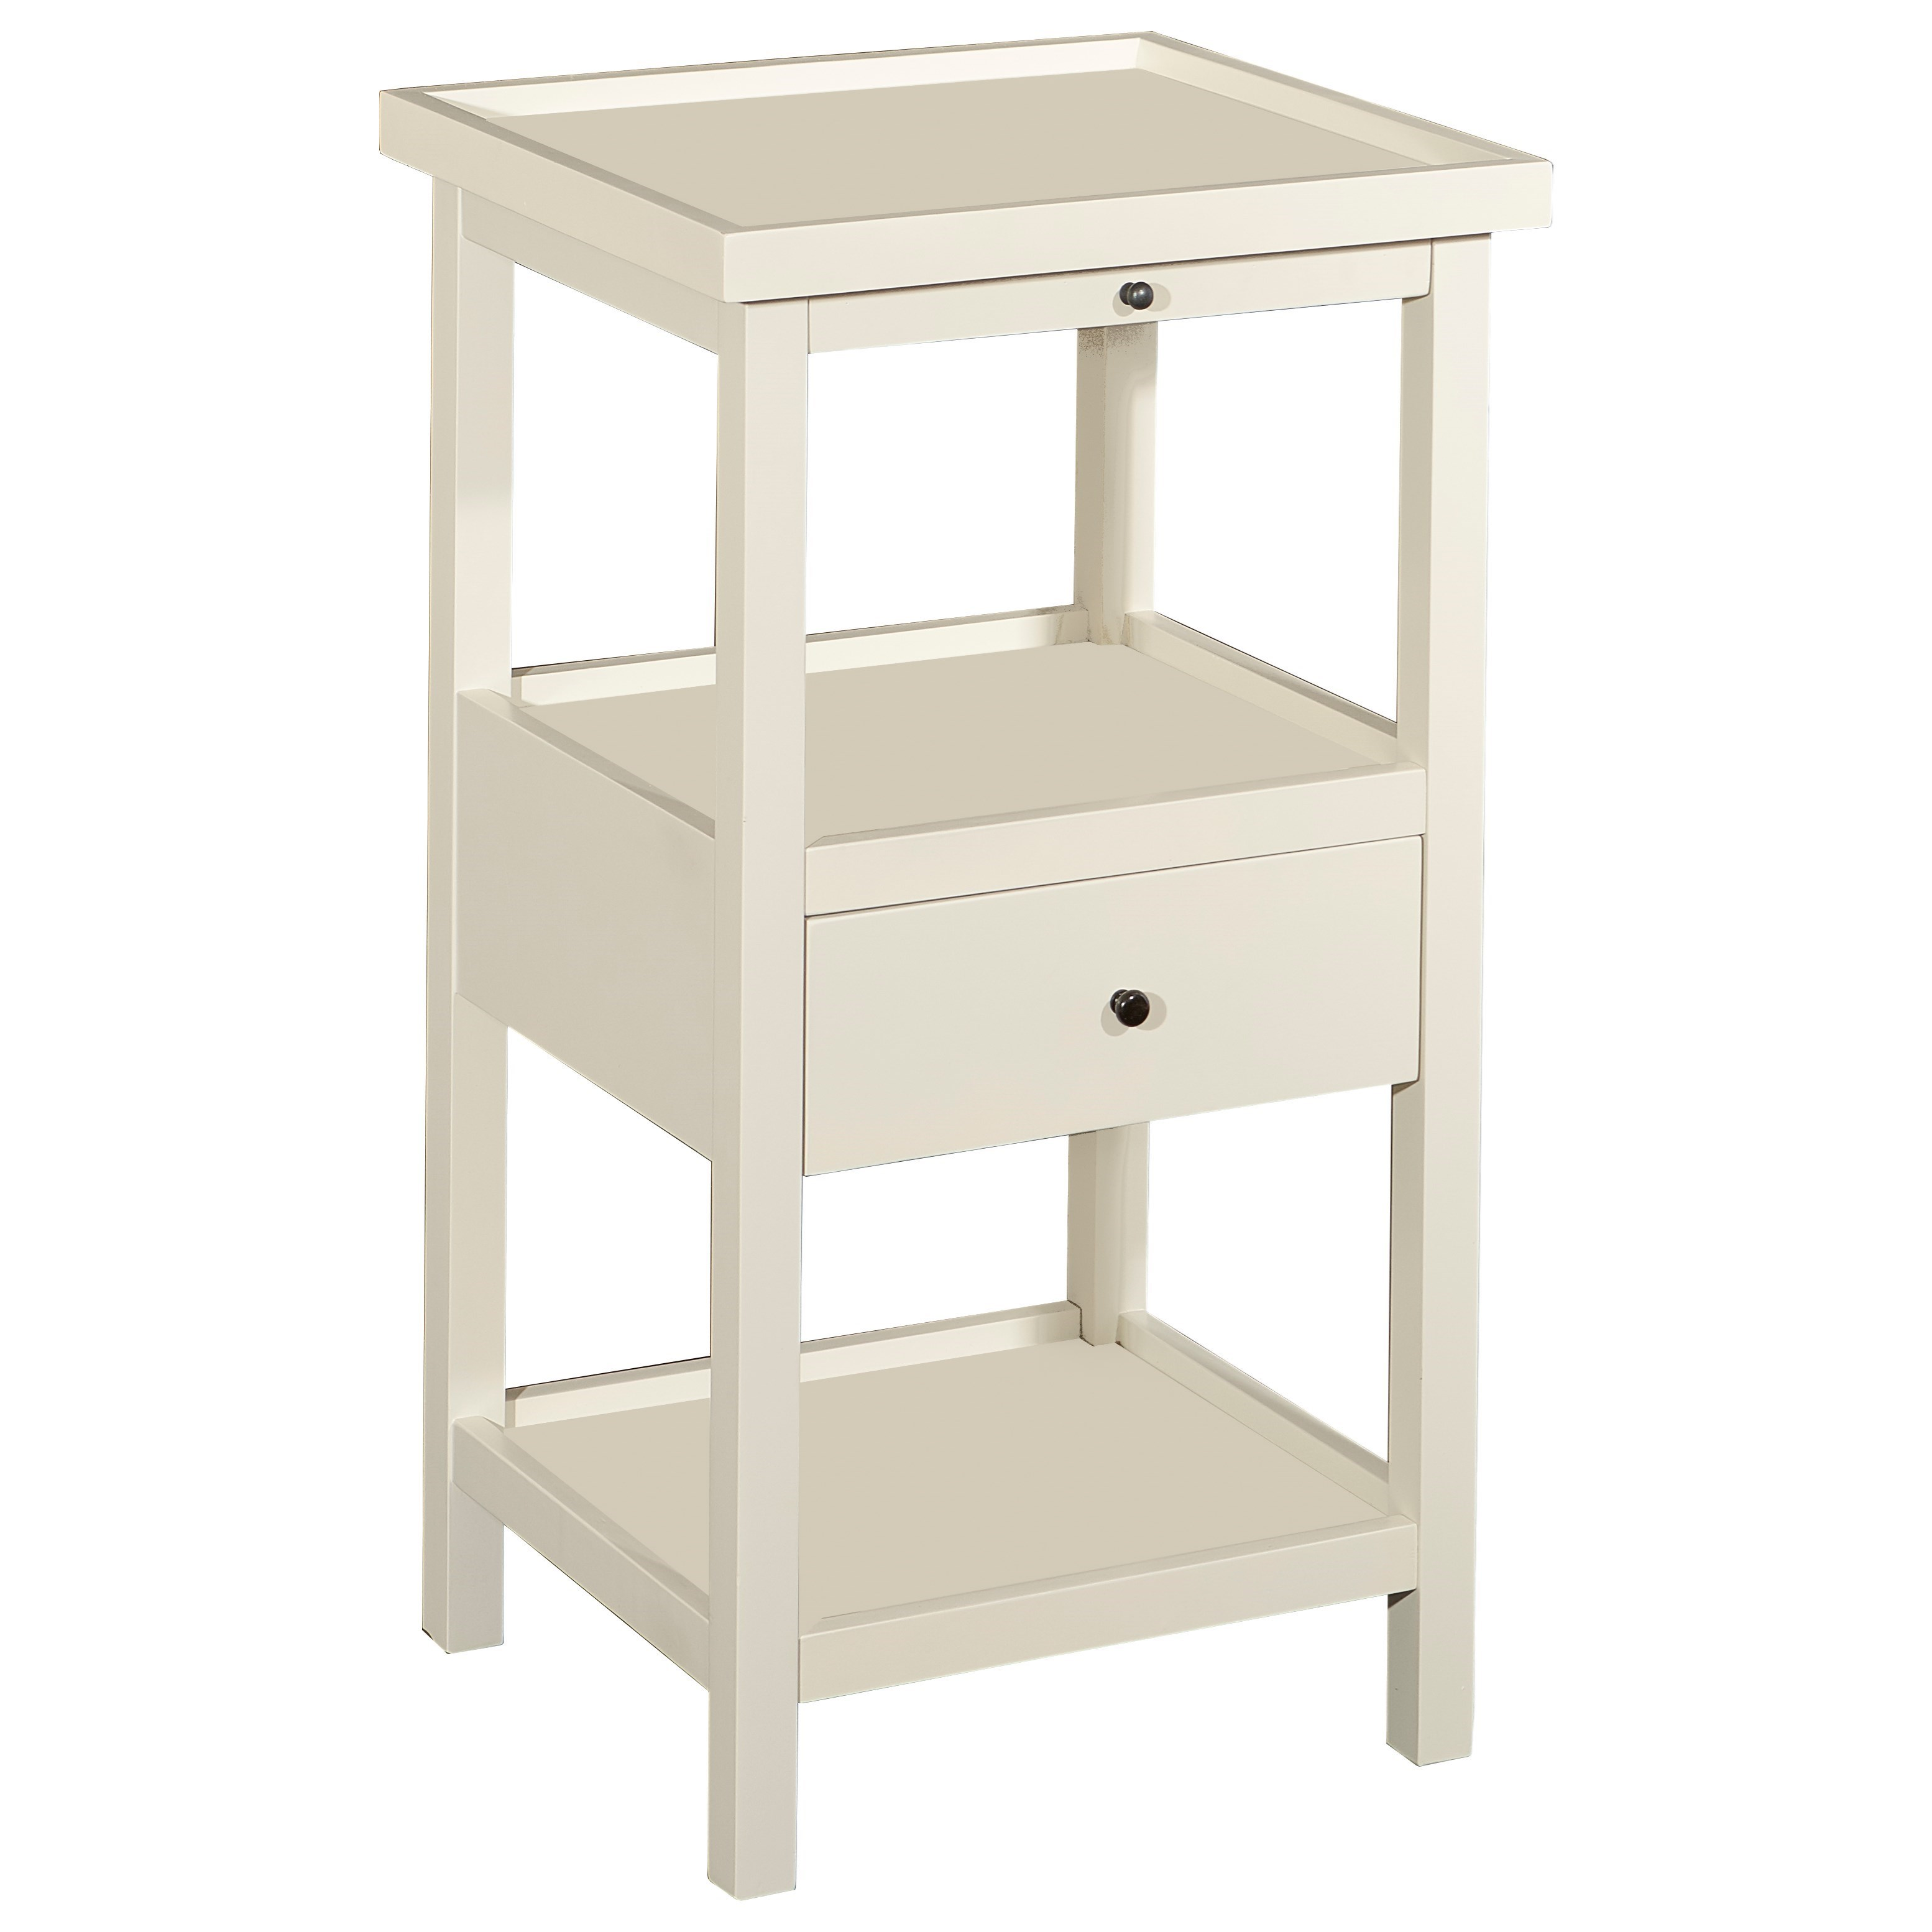 Accent Furniture Palmer Table with Shelf by Powell at Nassau Furniture and Mattress